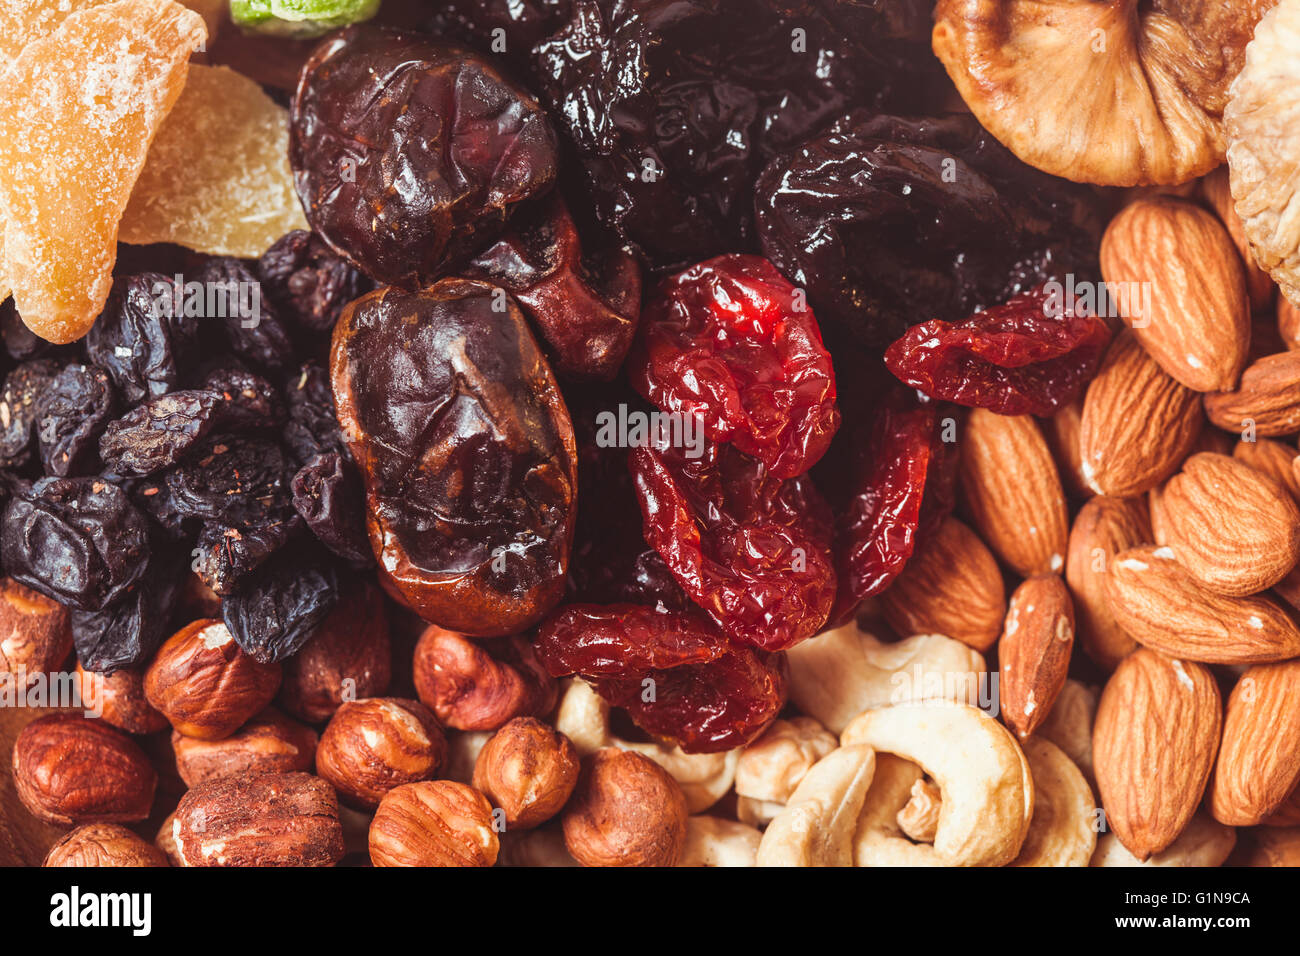 Dry fruits and nuts - Stock Image